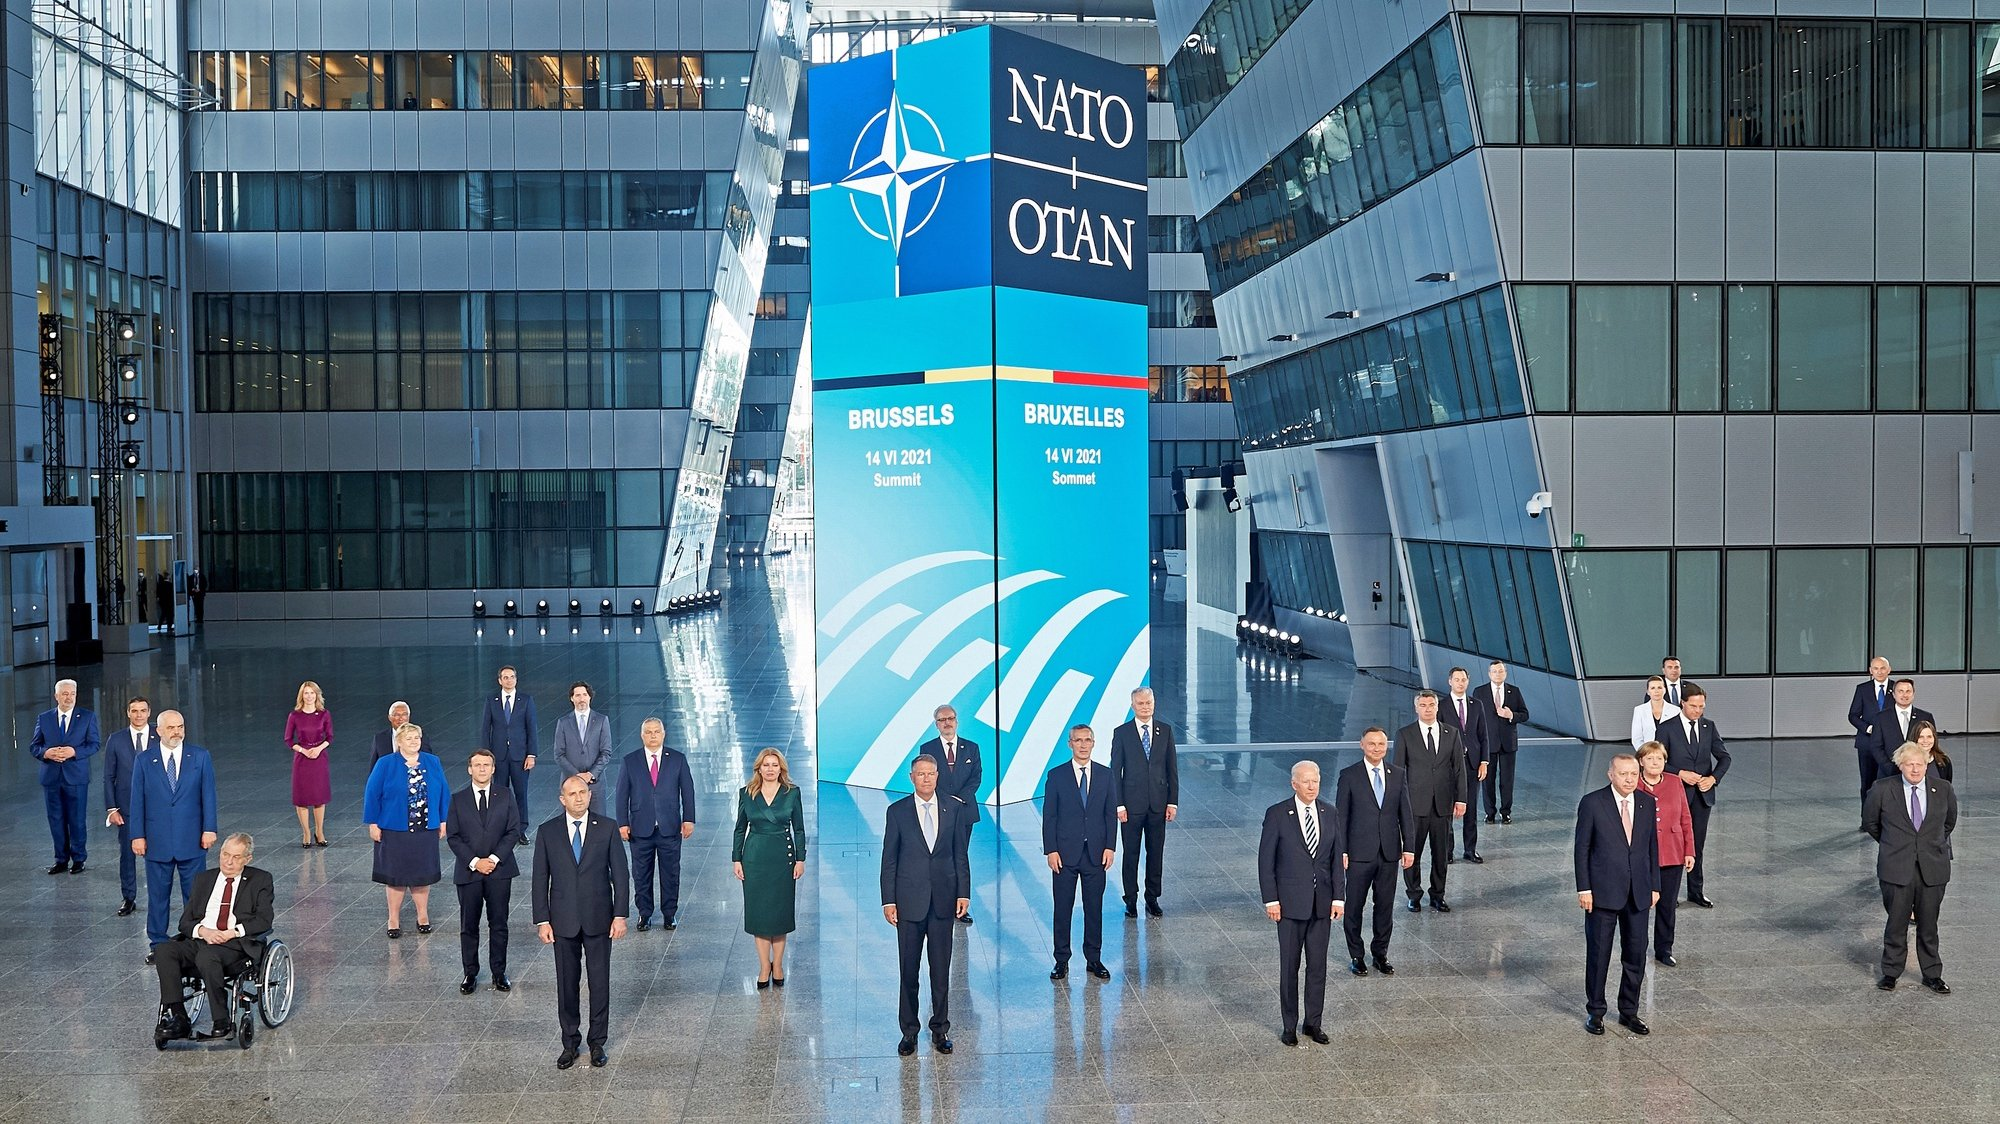 epa09270373 NATO heads of states and governments pose for the family picture during the NATO summit at the Alliance's headquarters, in Brussels, Belgium, 14 June 2021. The 30-nation alliance hopes to reaffirm its unity and discuss increasingly tense relations with China and Russia, as the organization pulls its troops out after 18 years in Afghanistan.  EPA/Horst Wagner / POOL